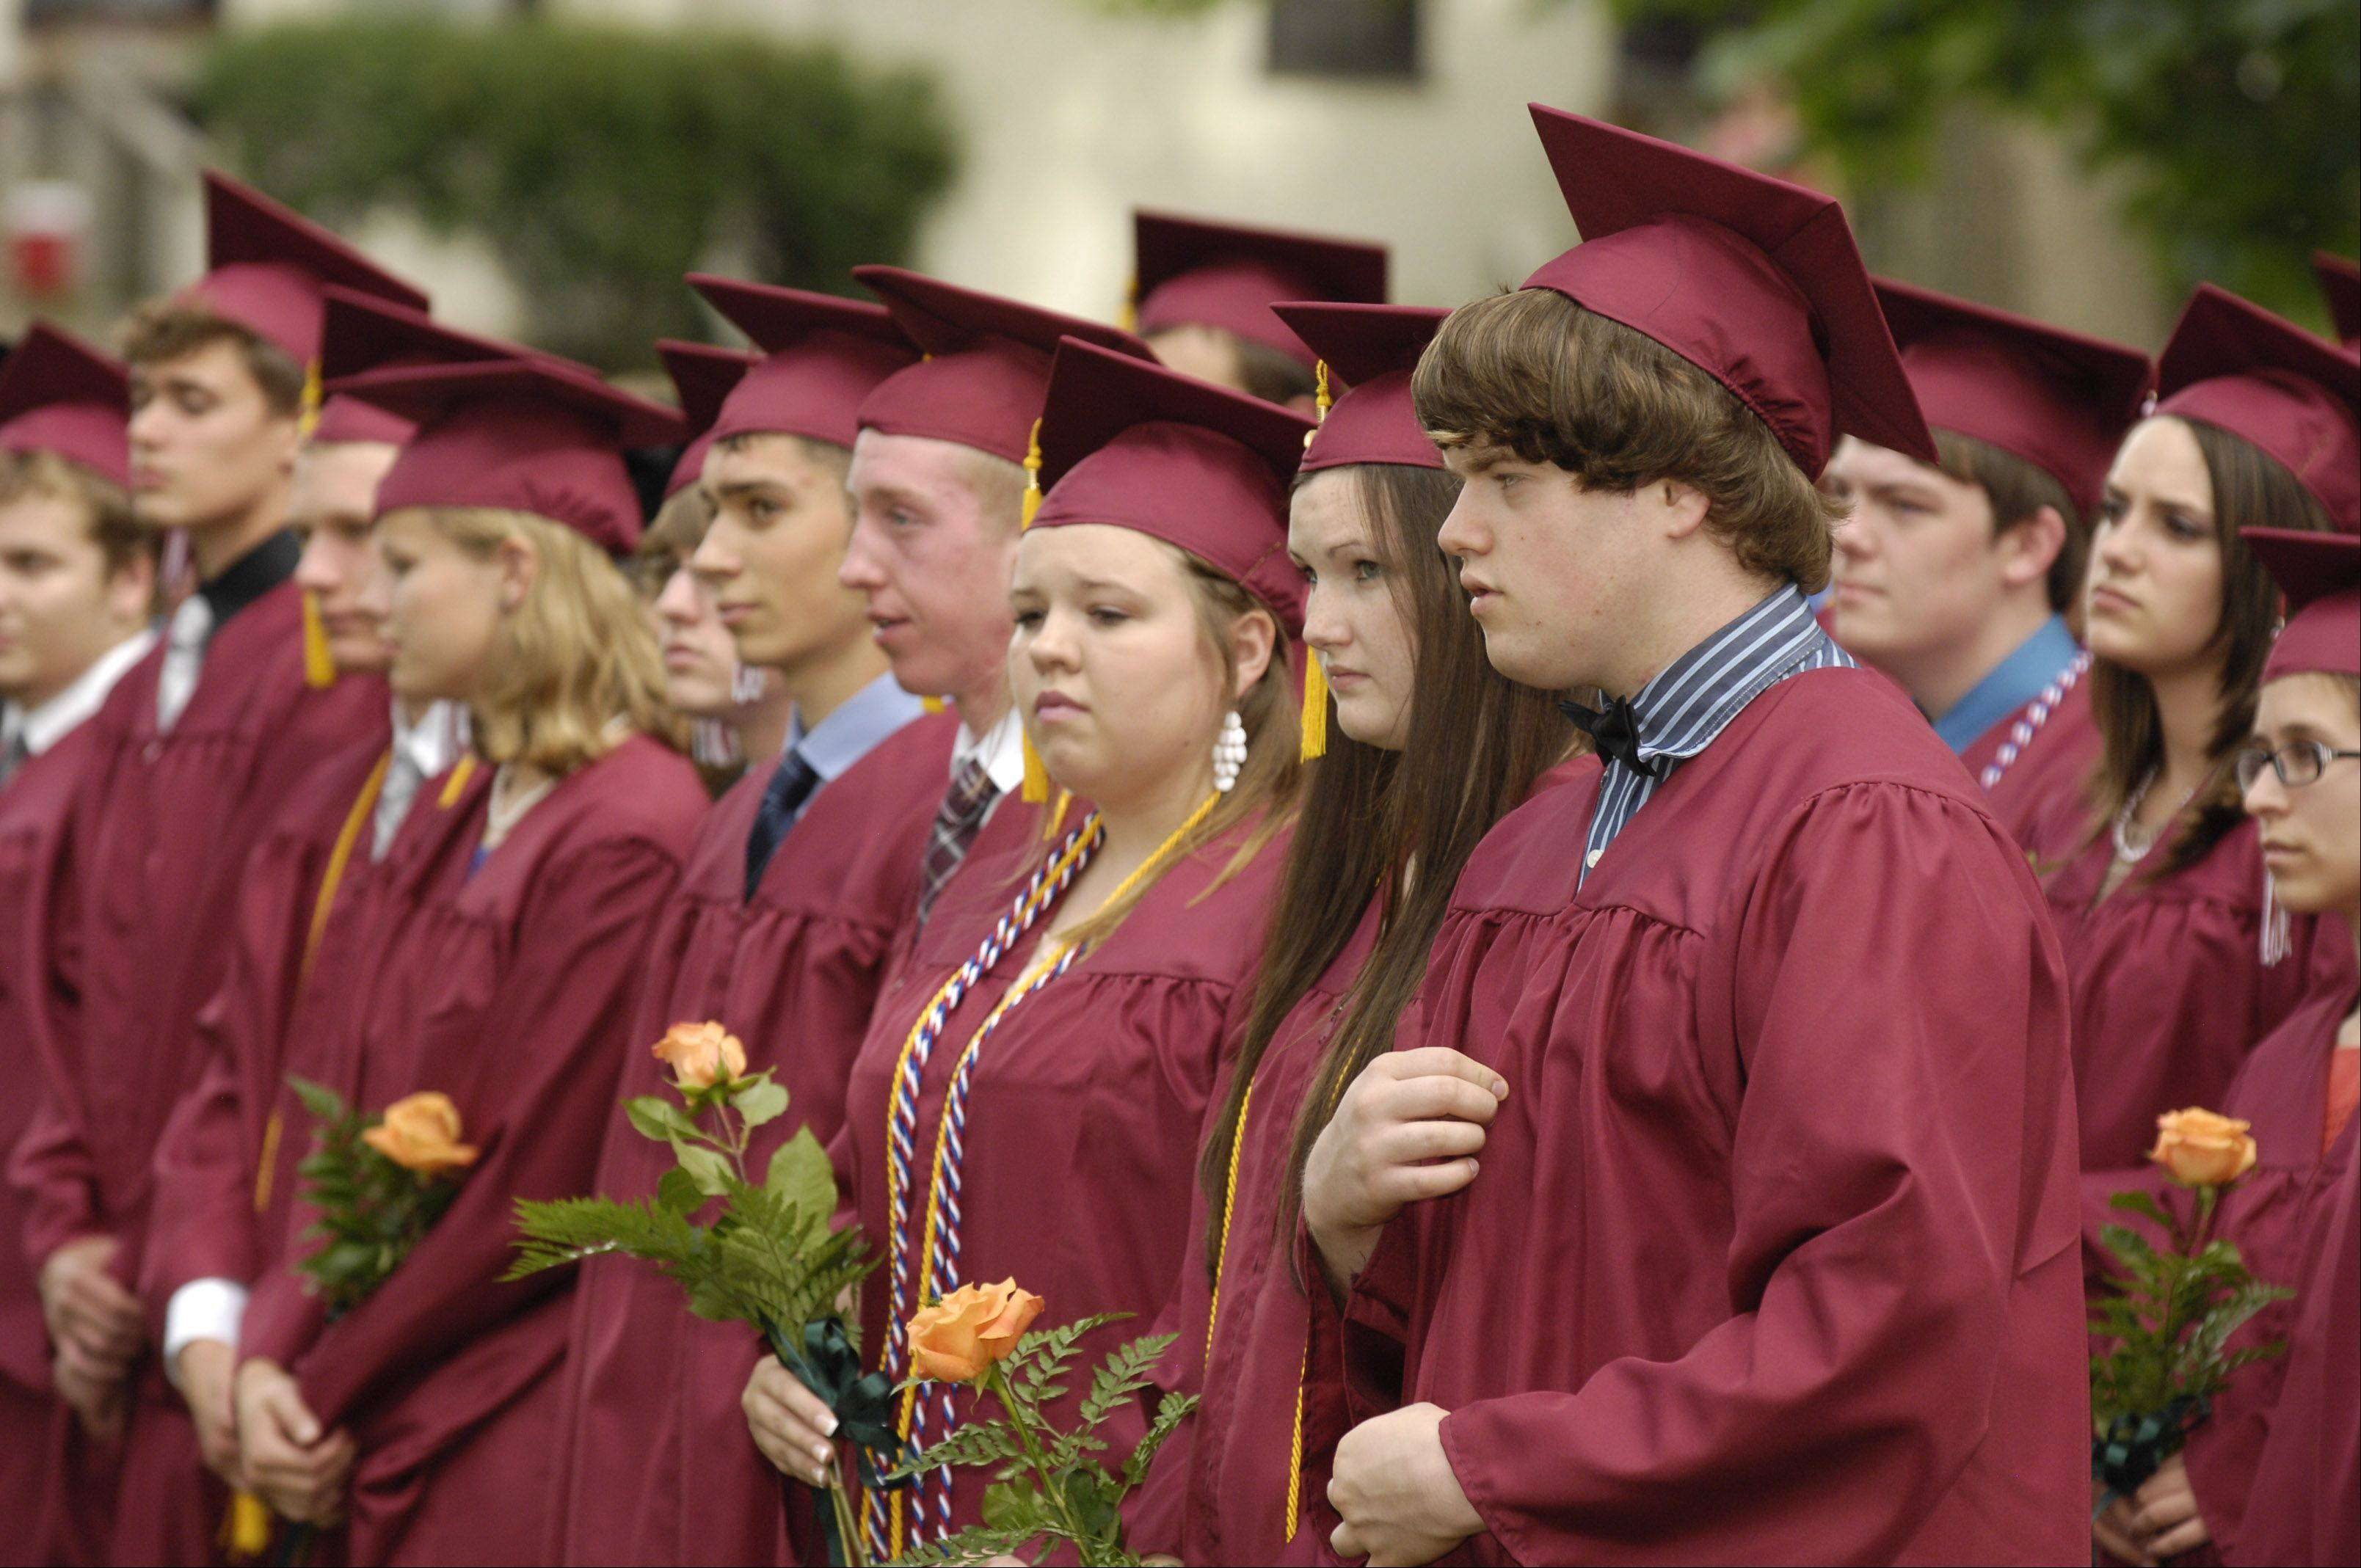 Wheaton Academy held its graduation Sunday June 3 at Wheaton Academy in West Chicago.